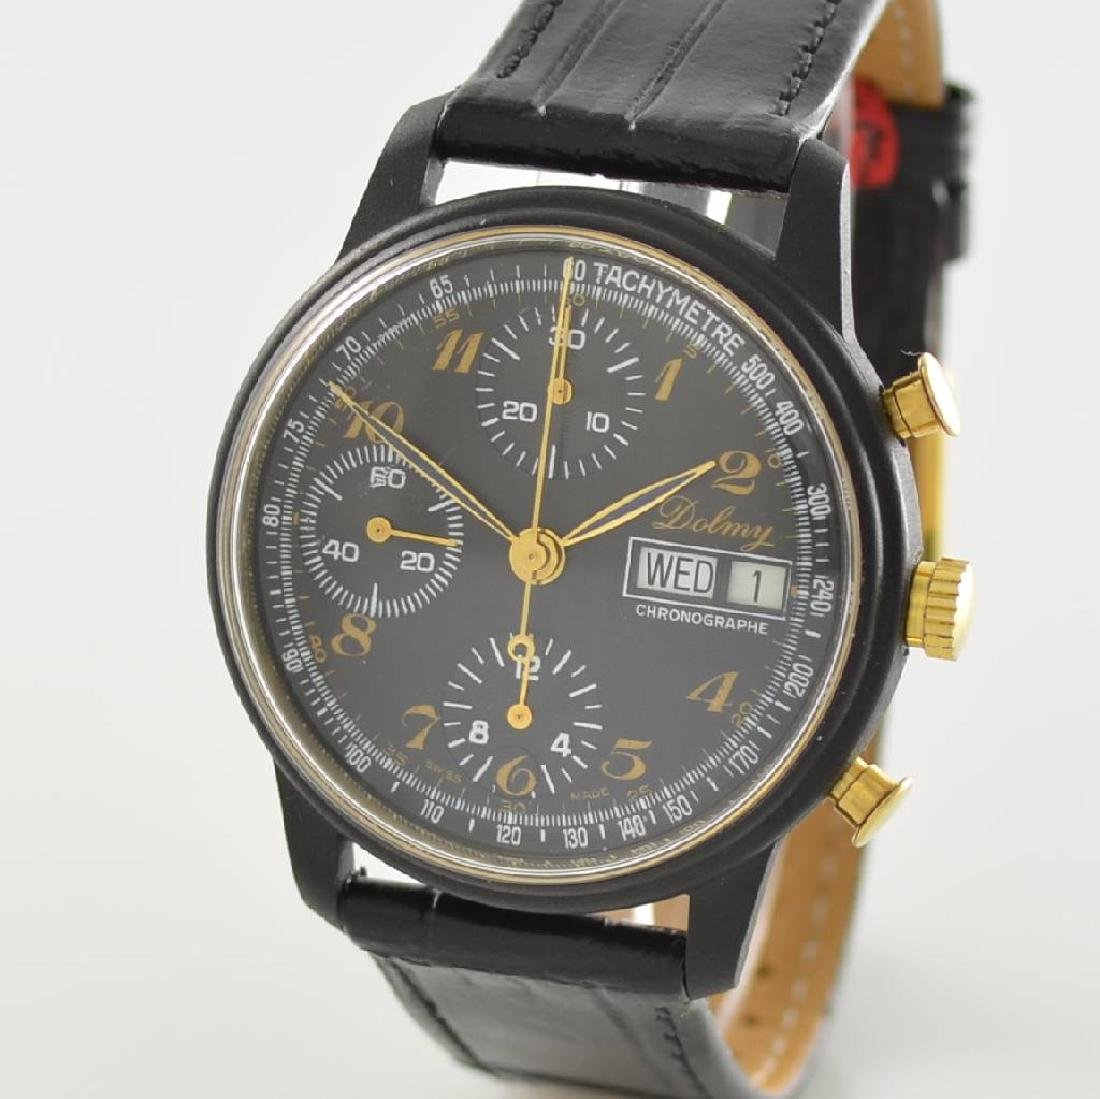 DOLMY manual wound chronograph - 4